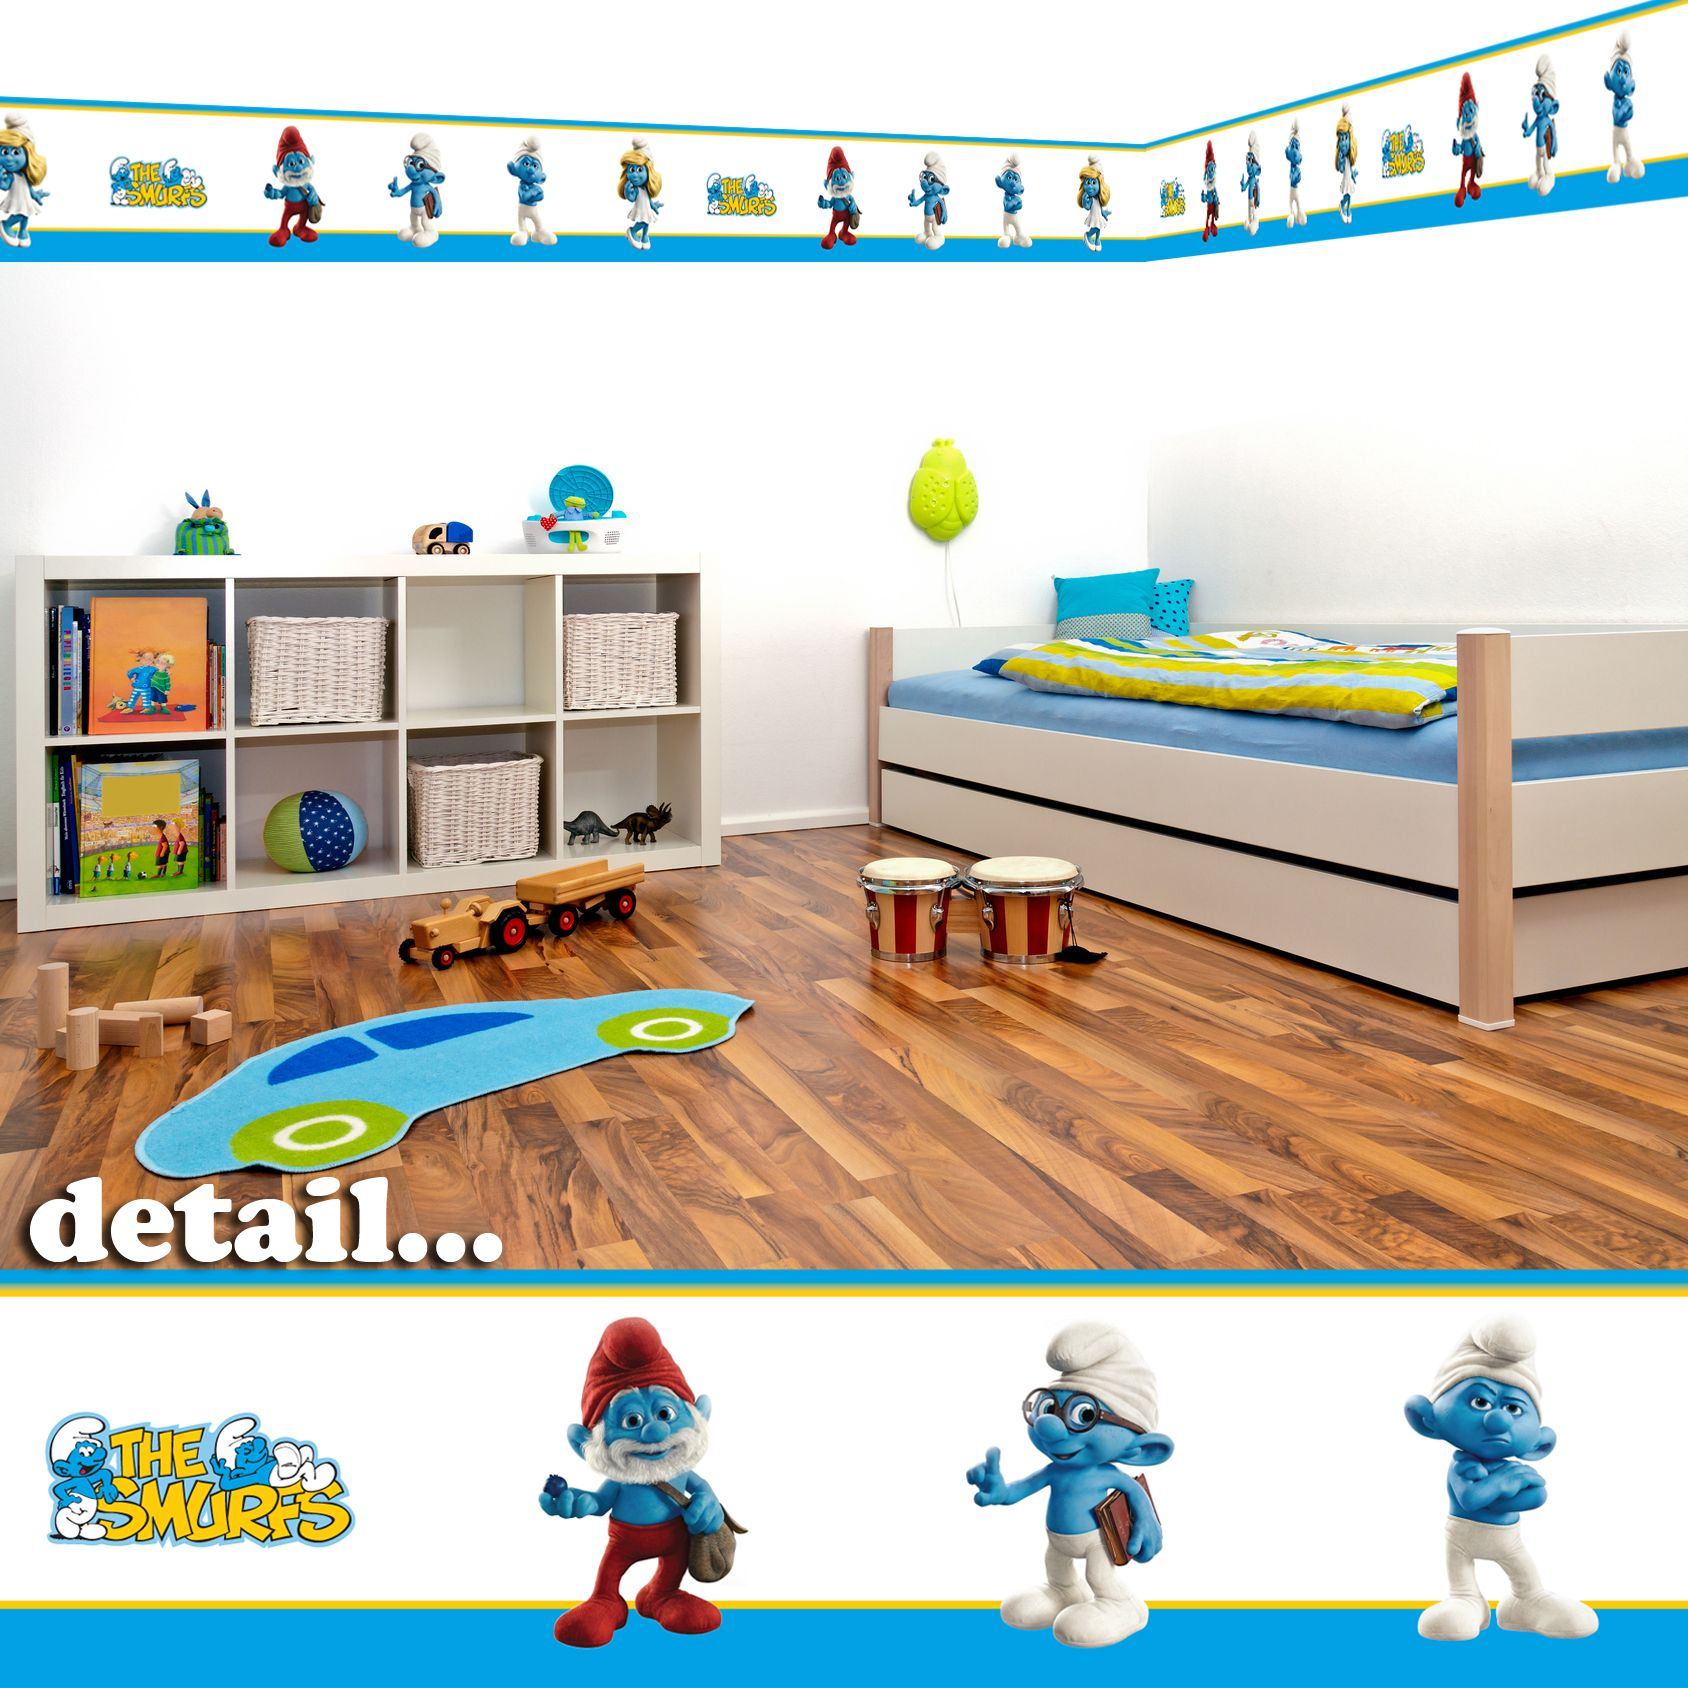 Best Smurfs Self Adhesive Decorative Wall Border 5M 400 x 300